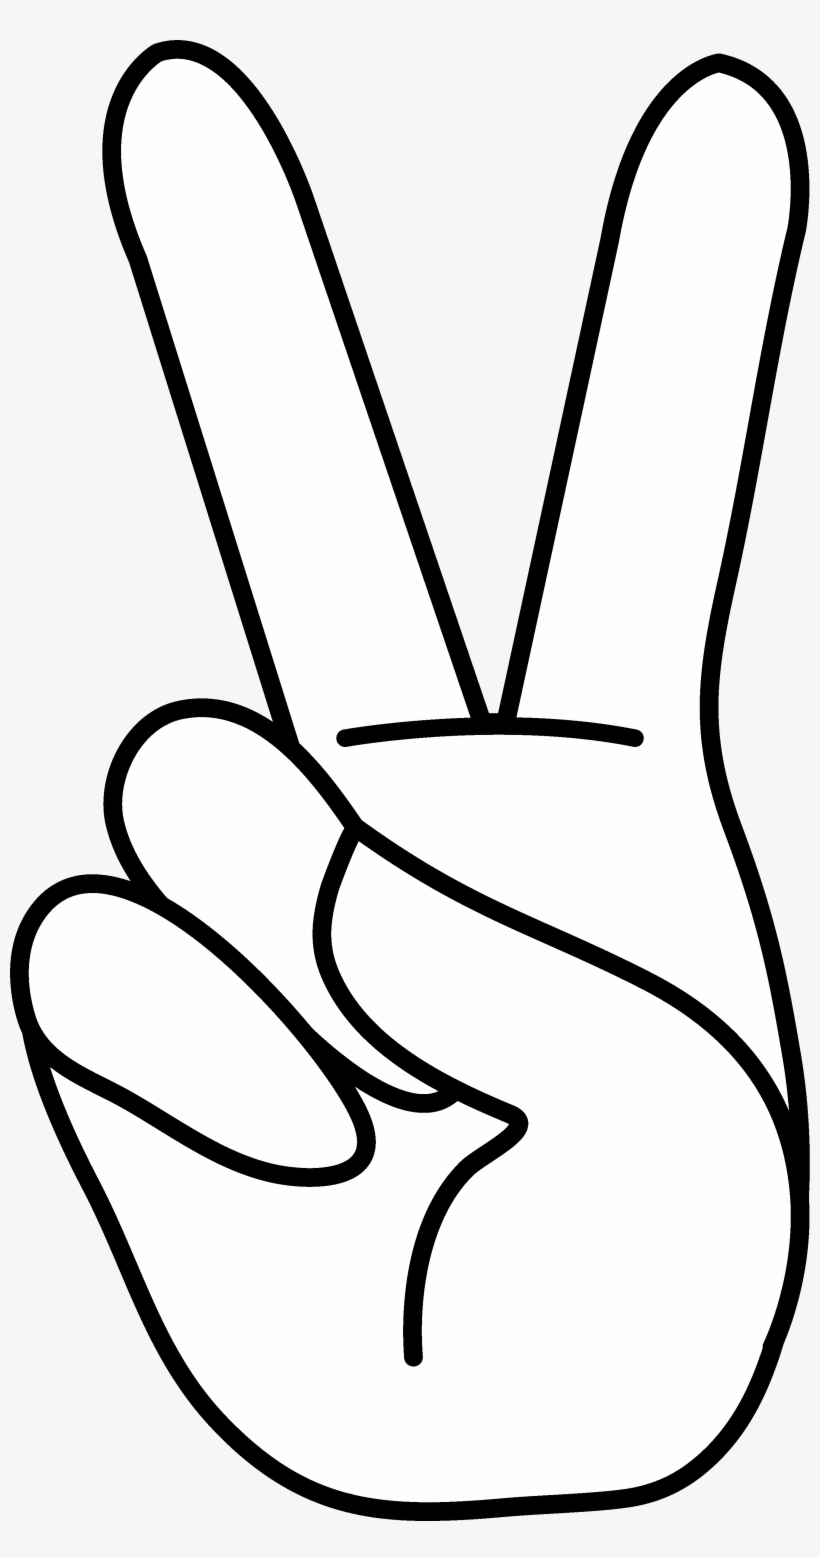 Peace Sign Clipart Transparent Background - Peace Hand Sign